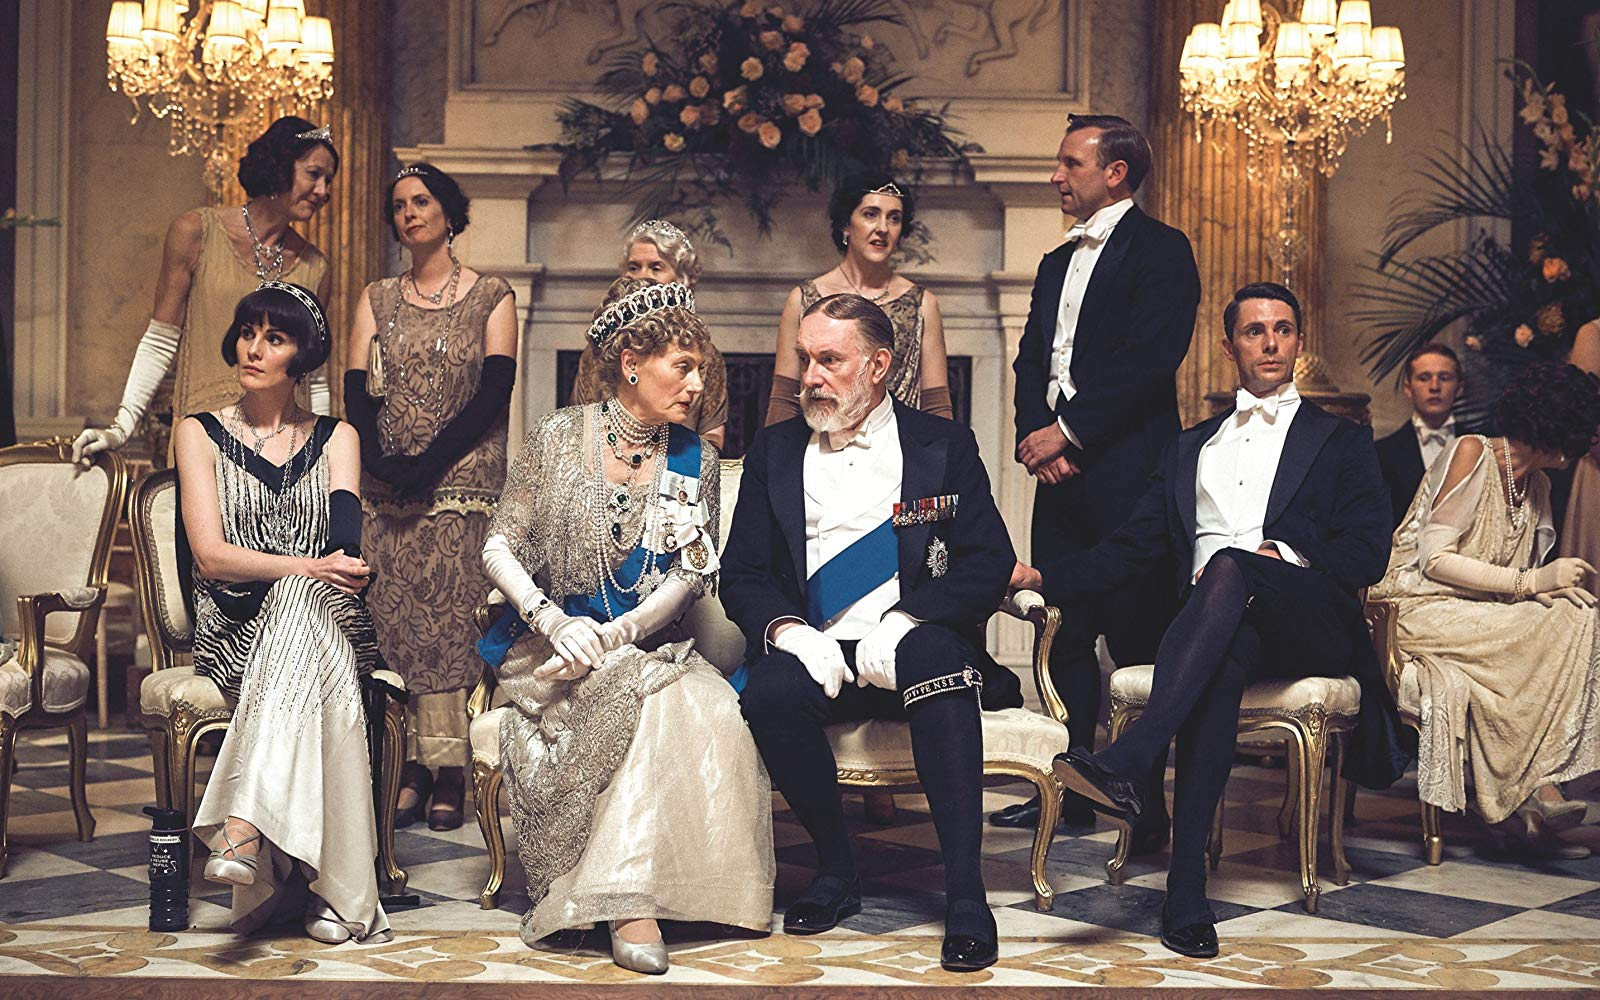 Seriale podobne do The Crown, downtown abbey